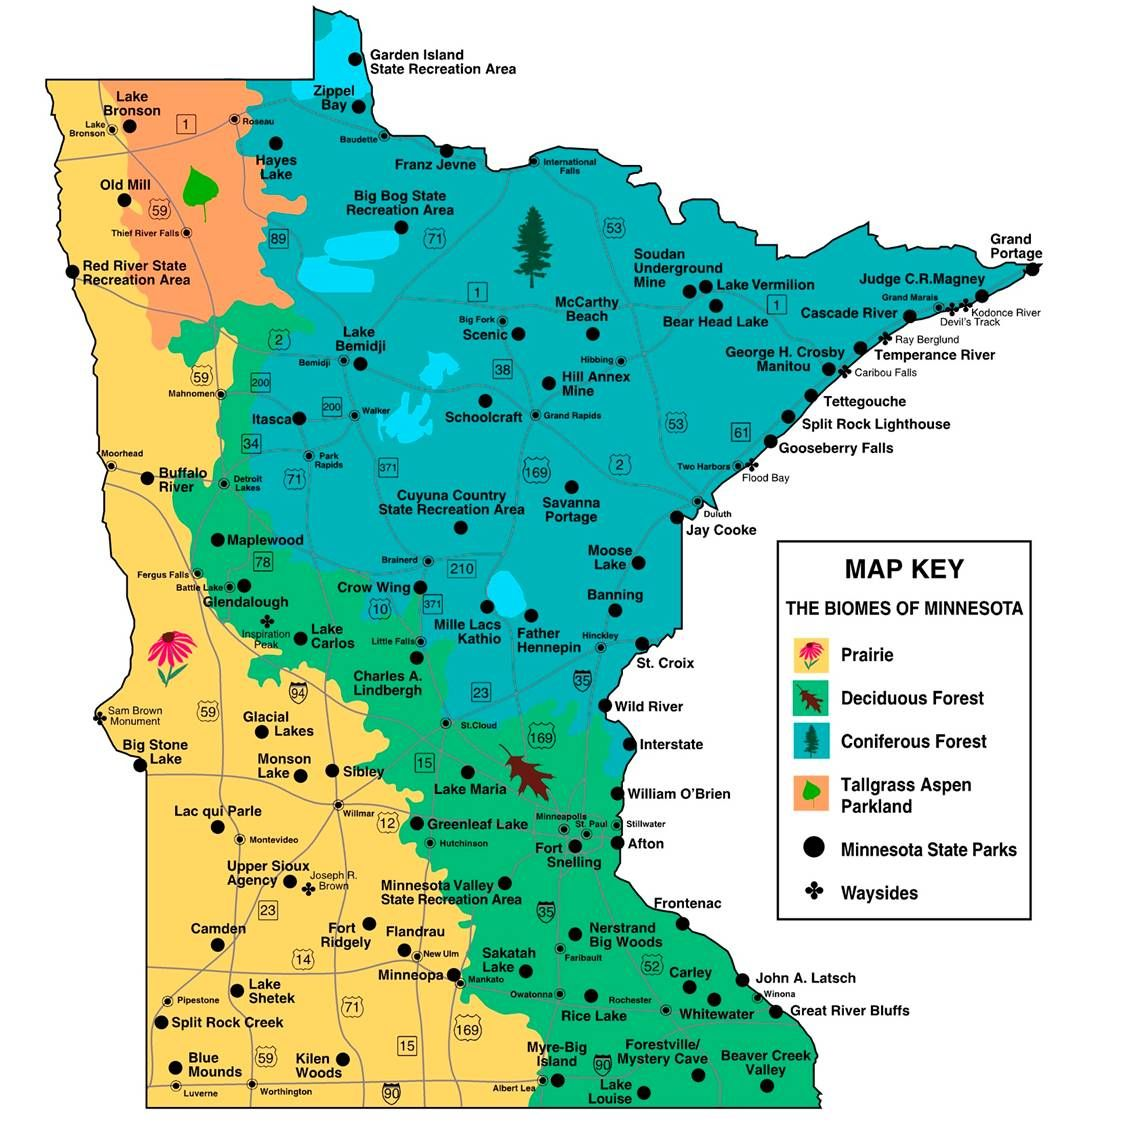 Mn State Park Map minnesota state parks | With this in mind, how should overall